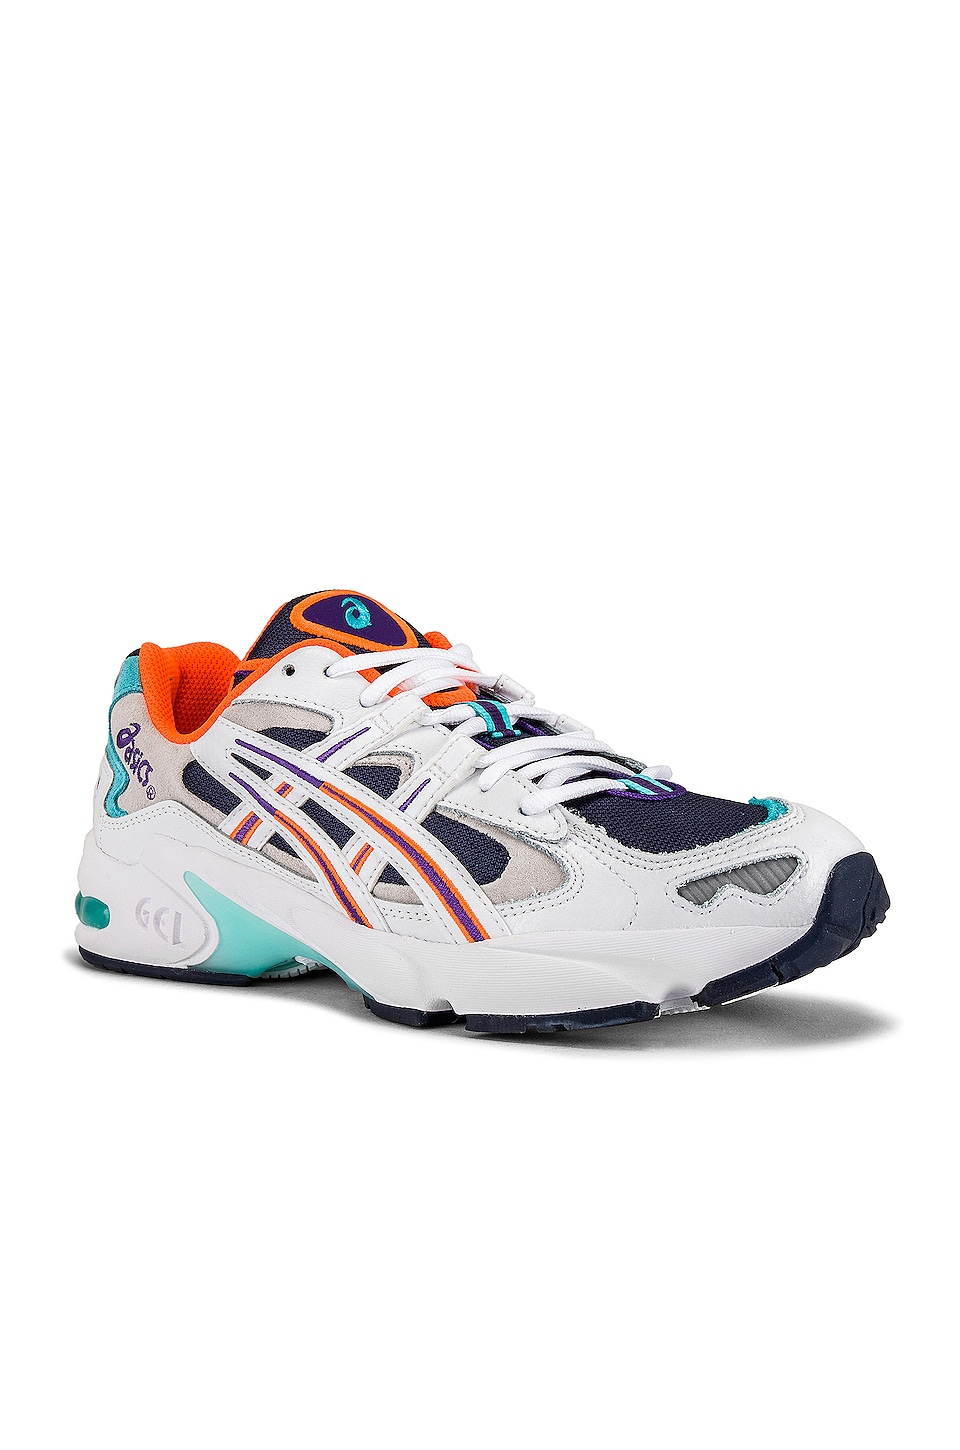 Asics Platinum Kayano 5 OG in Midnight & White